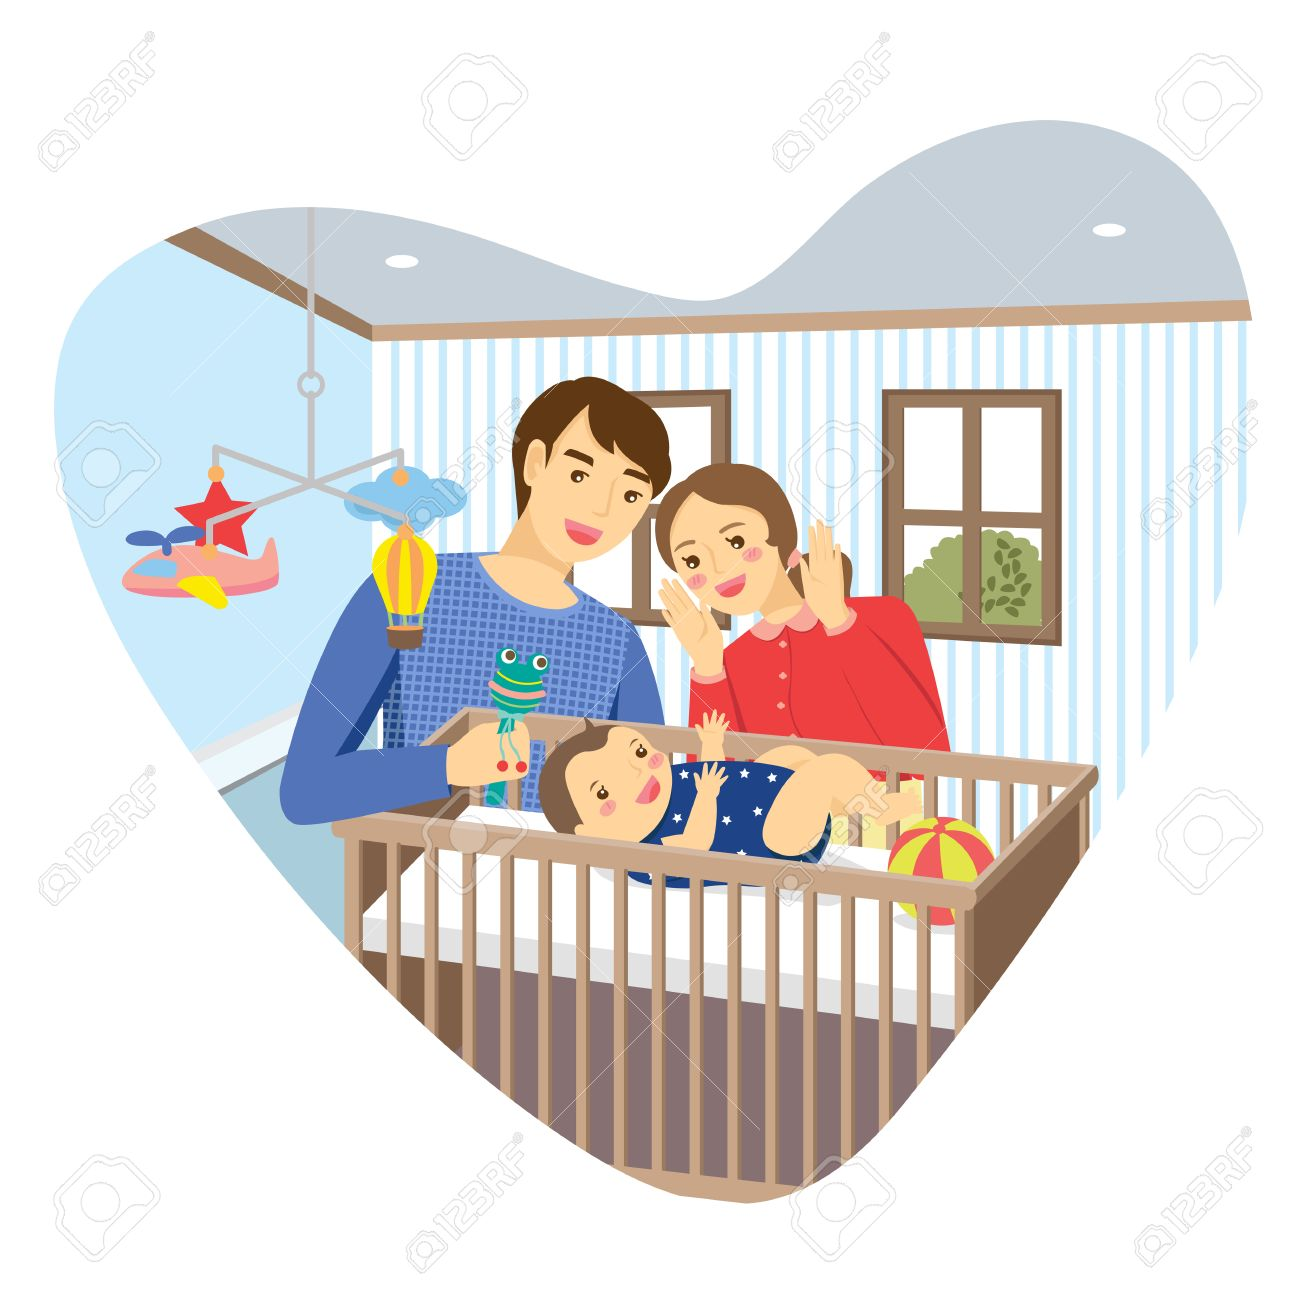 Family with baby in bedroom with heart shape frame. Mommy playing peekaboo with baby boy lying in a cot. Daddy holding baby rattle. - 53826069